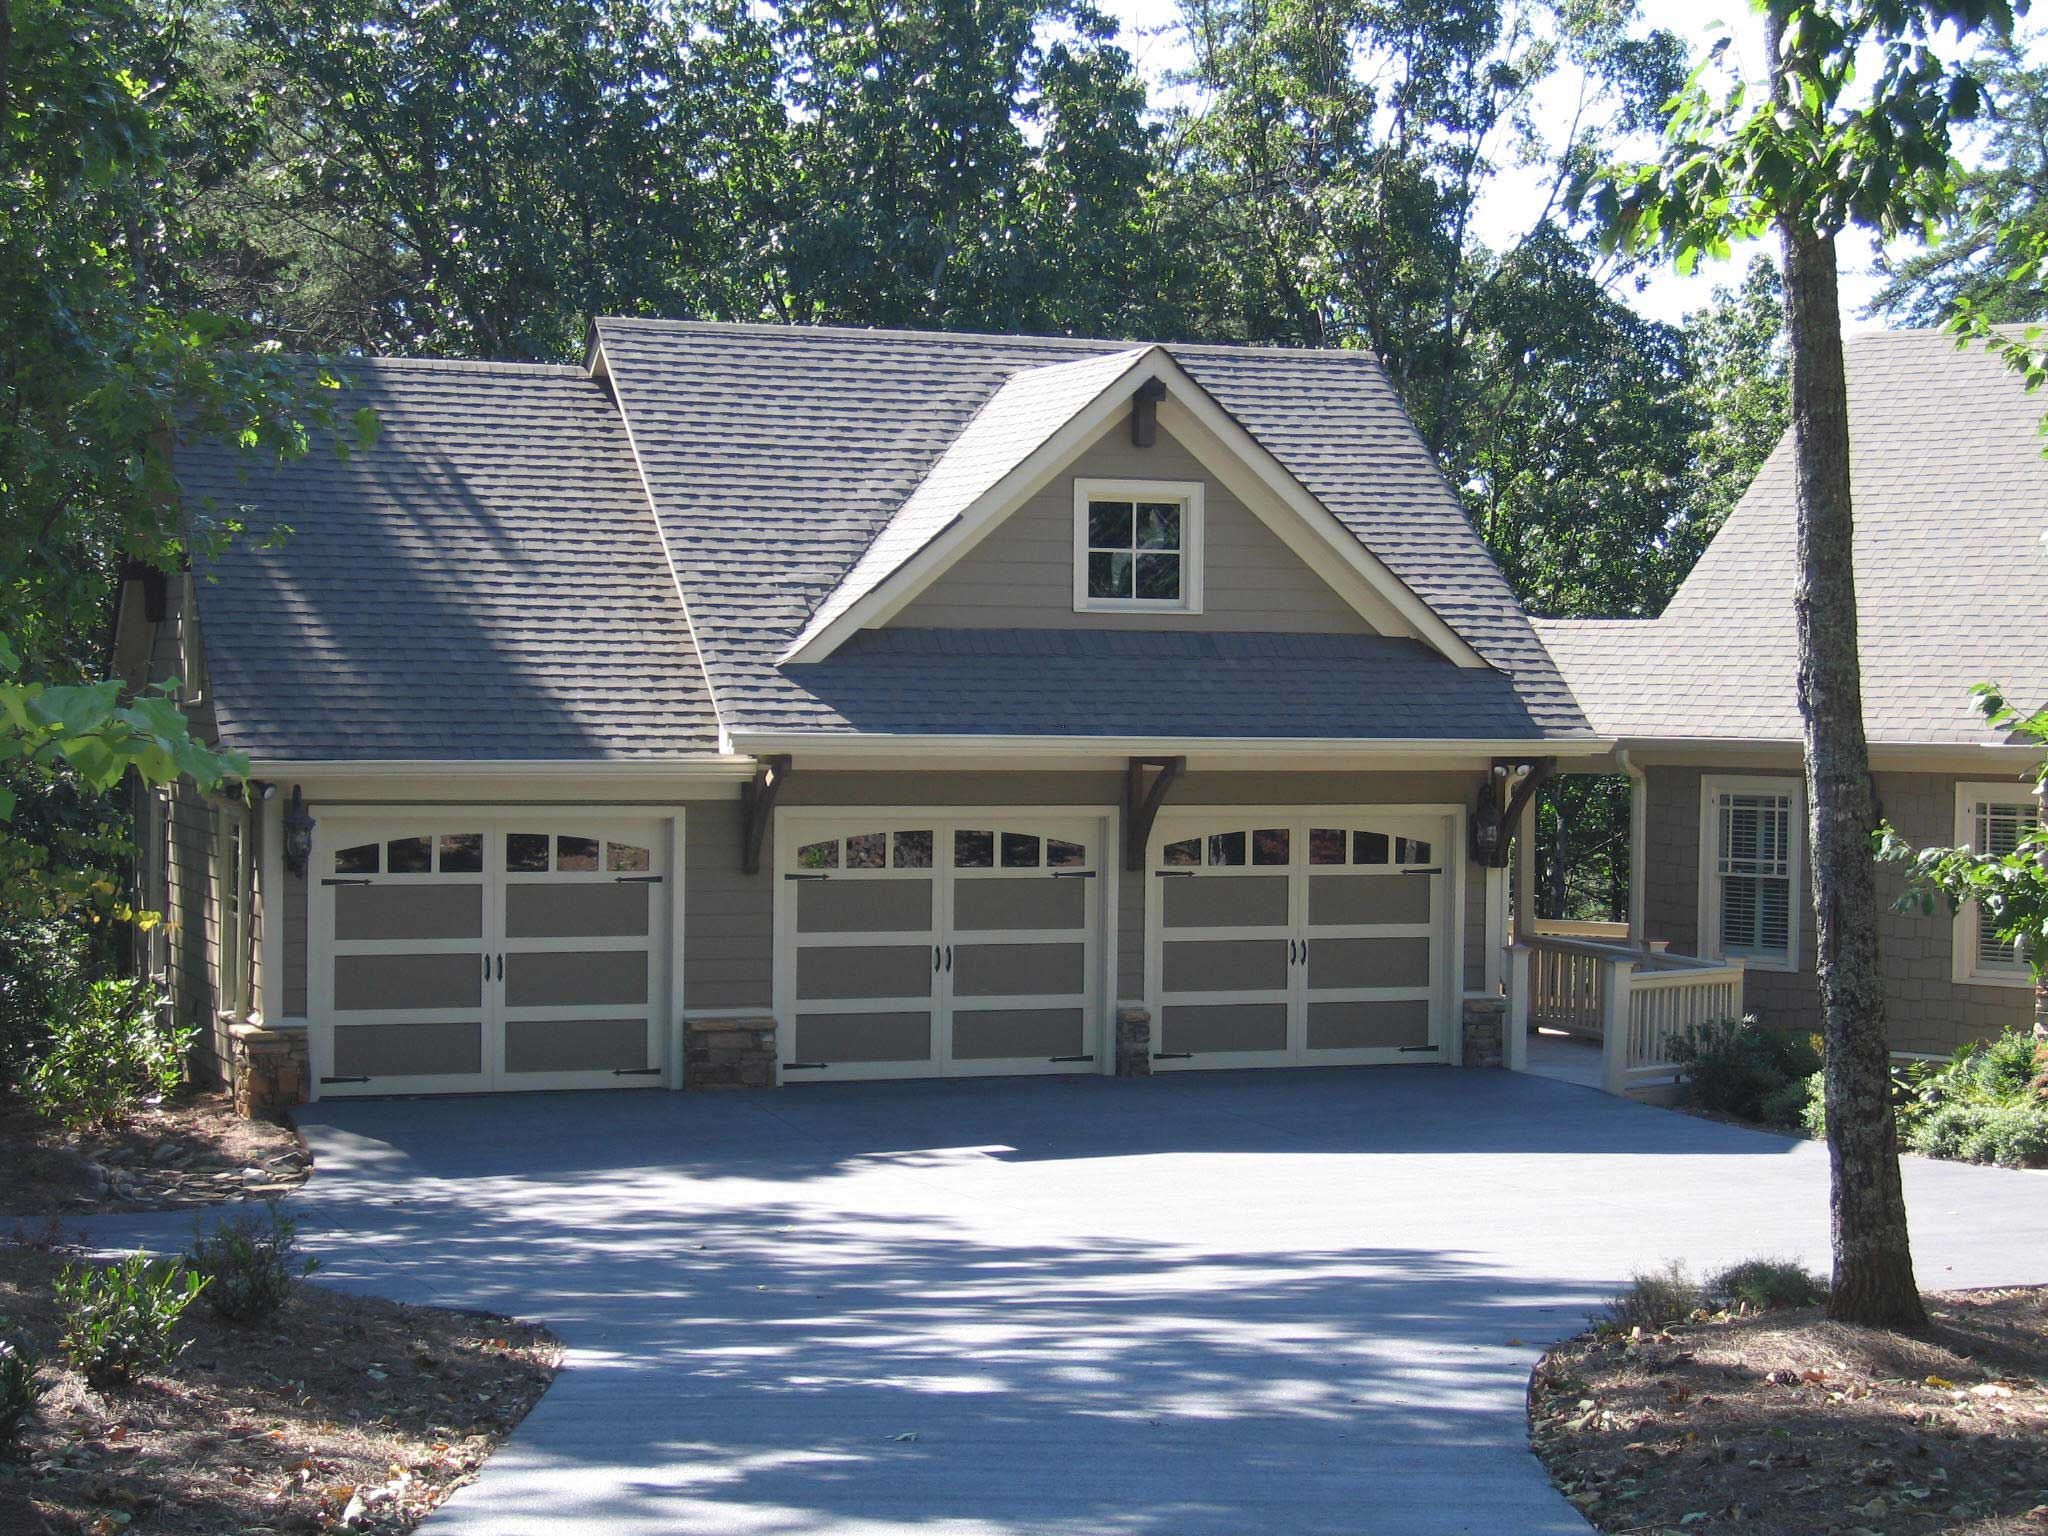 Garage W/Apartments With 3-Car, 1 Bedrm, 679 Sq Ft